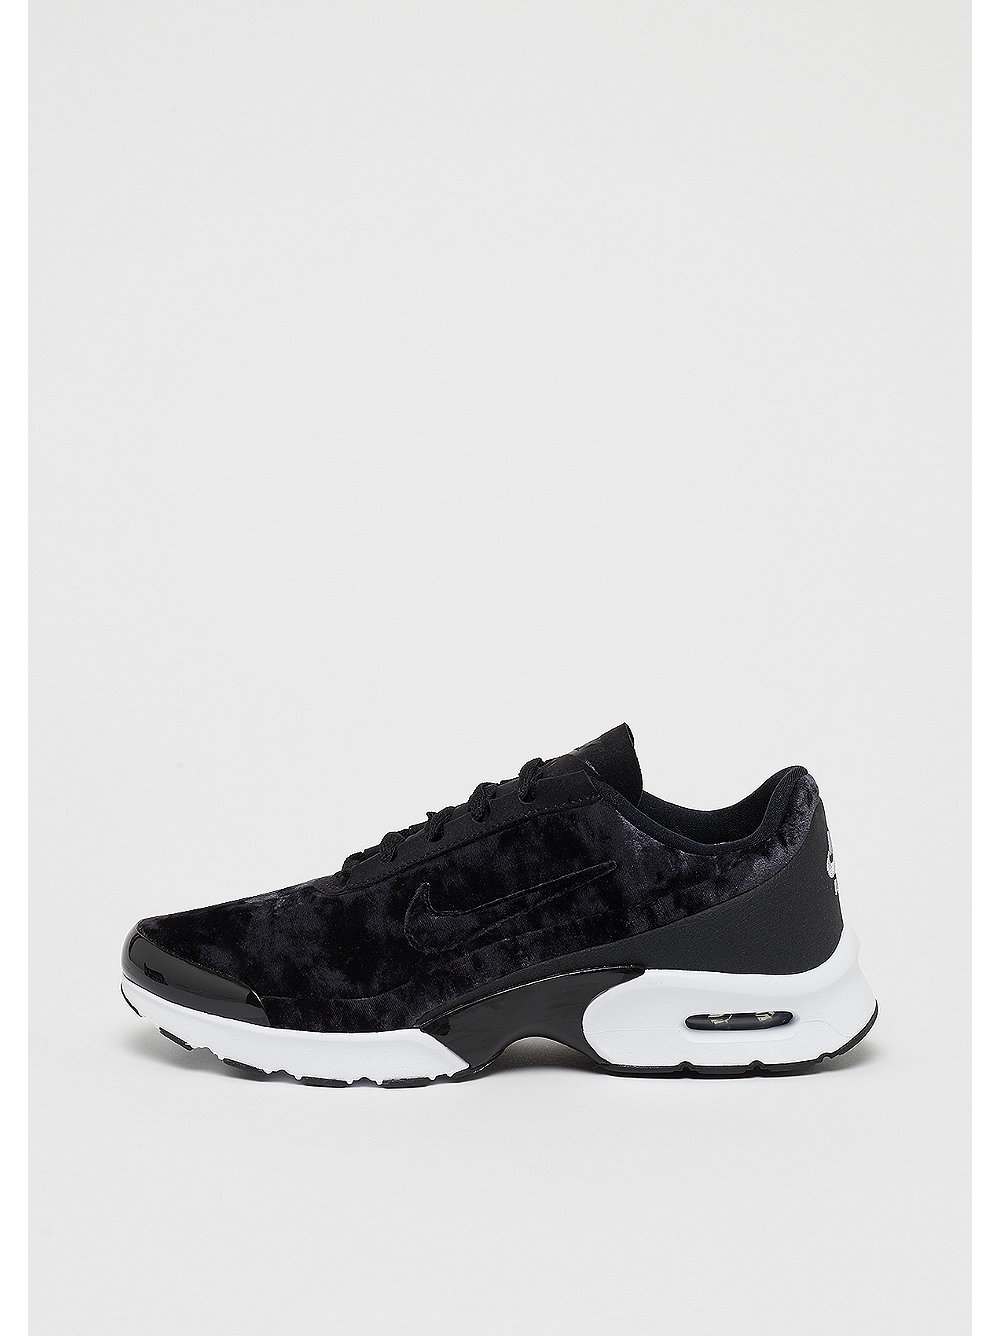 Wmns Air Max Jewell Premium black/black